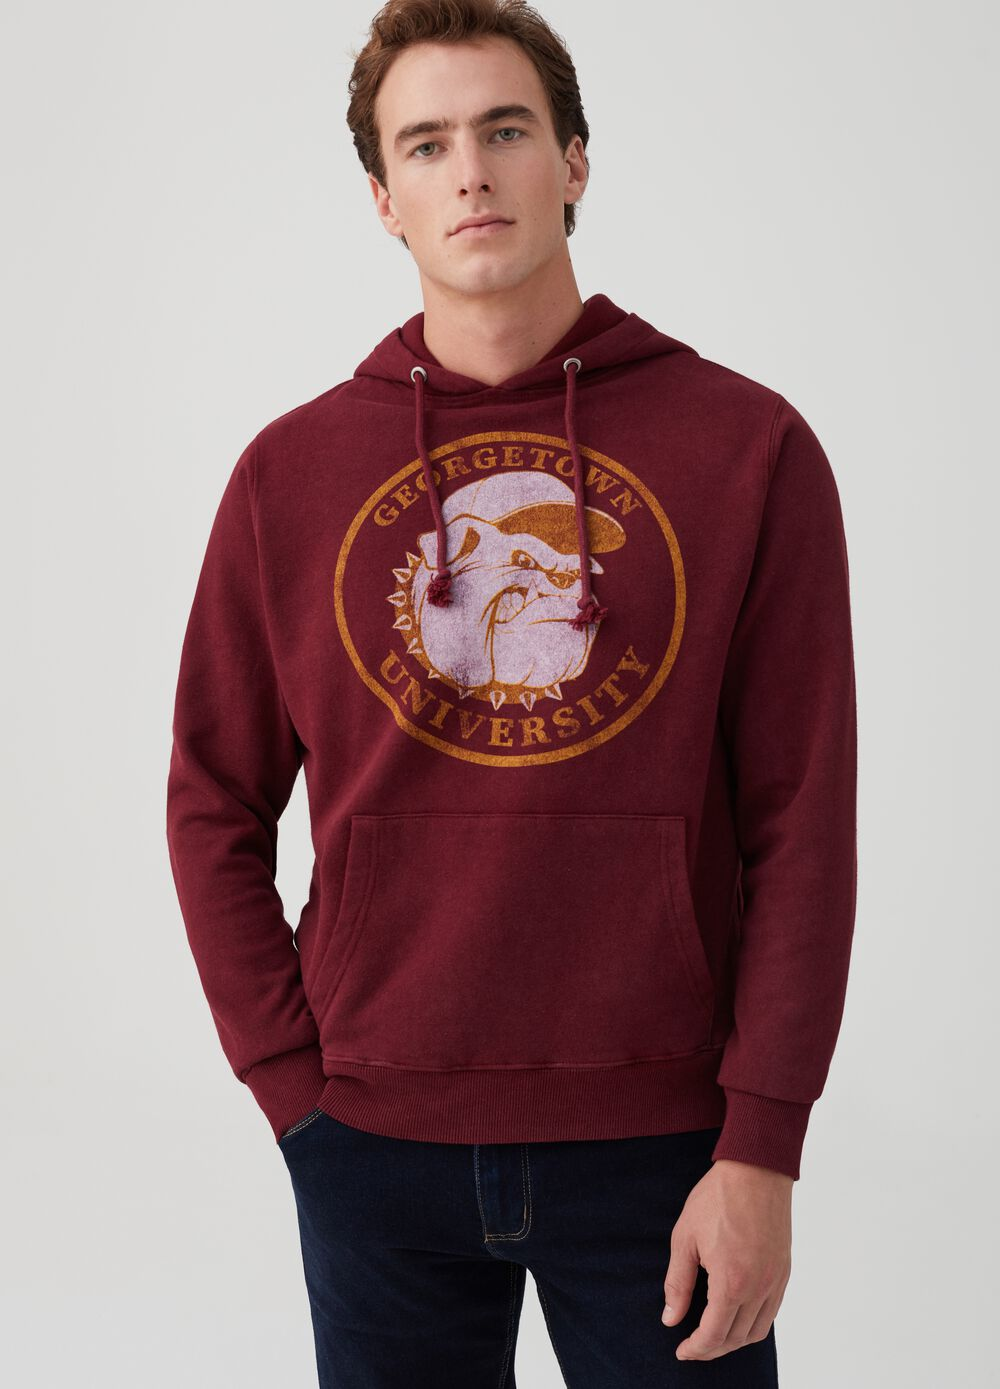 Sweatshirt with pouch pocket and bulldog print